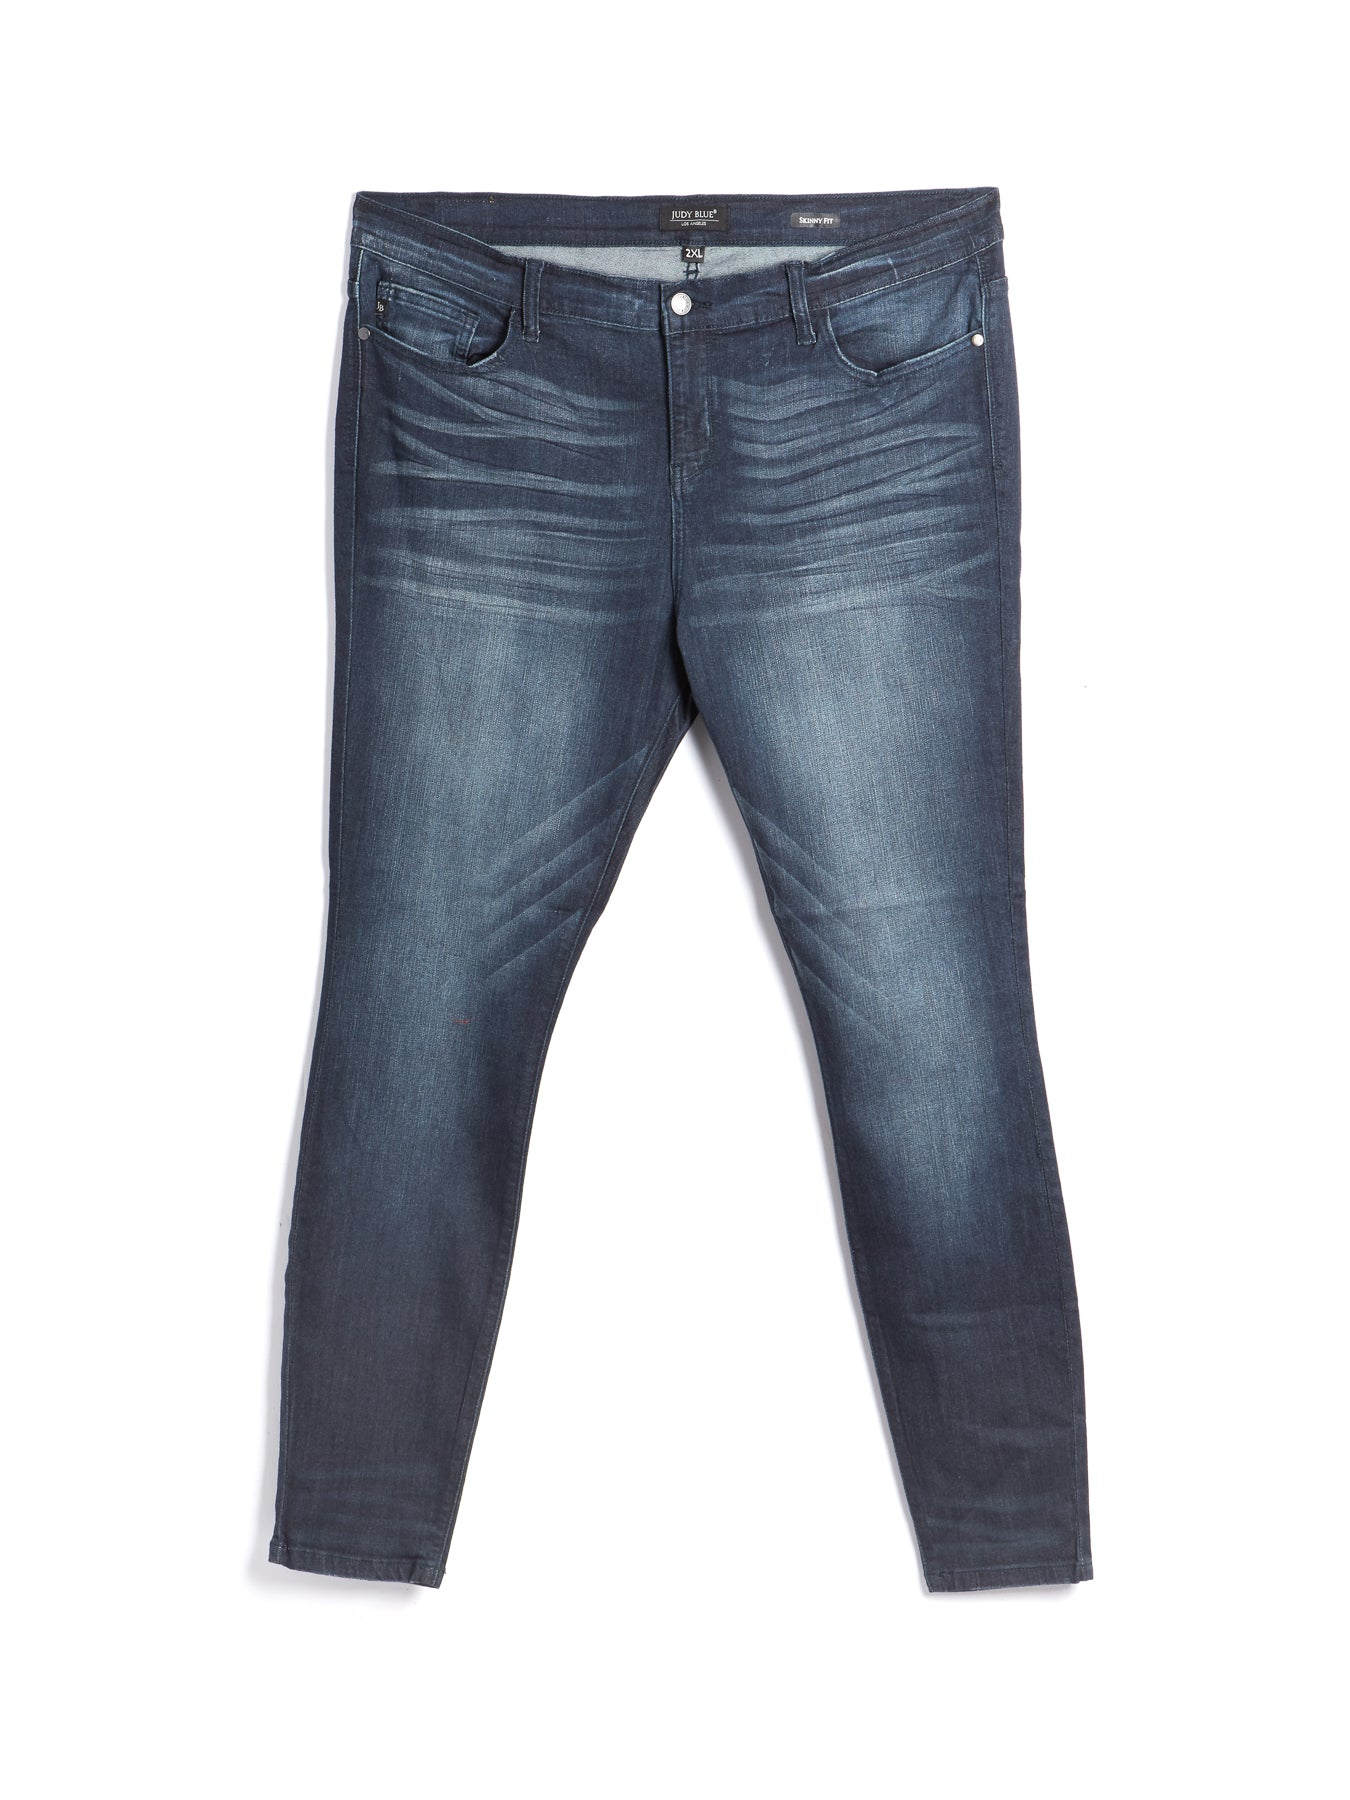 a5571966d5a Judy Blue Rayon Plus Size Skinny Jeans